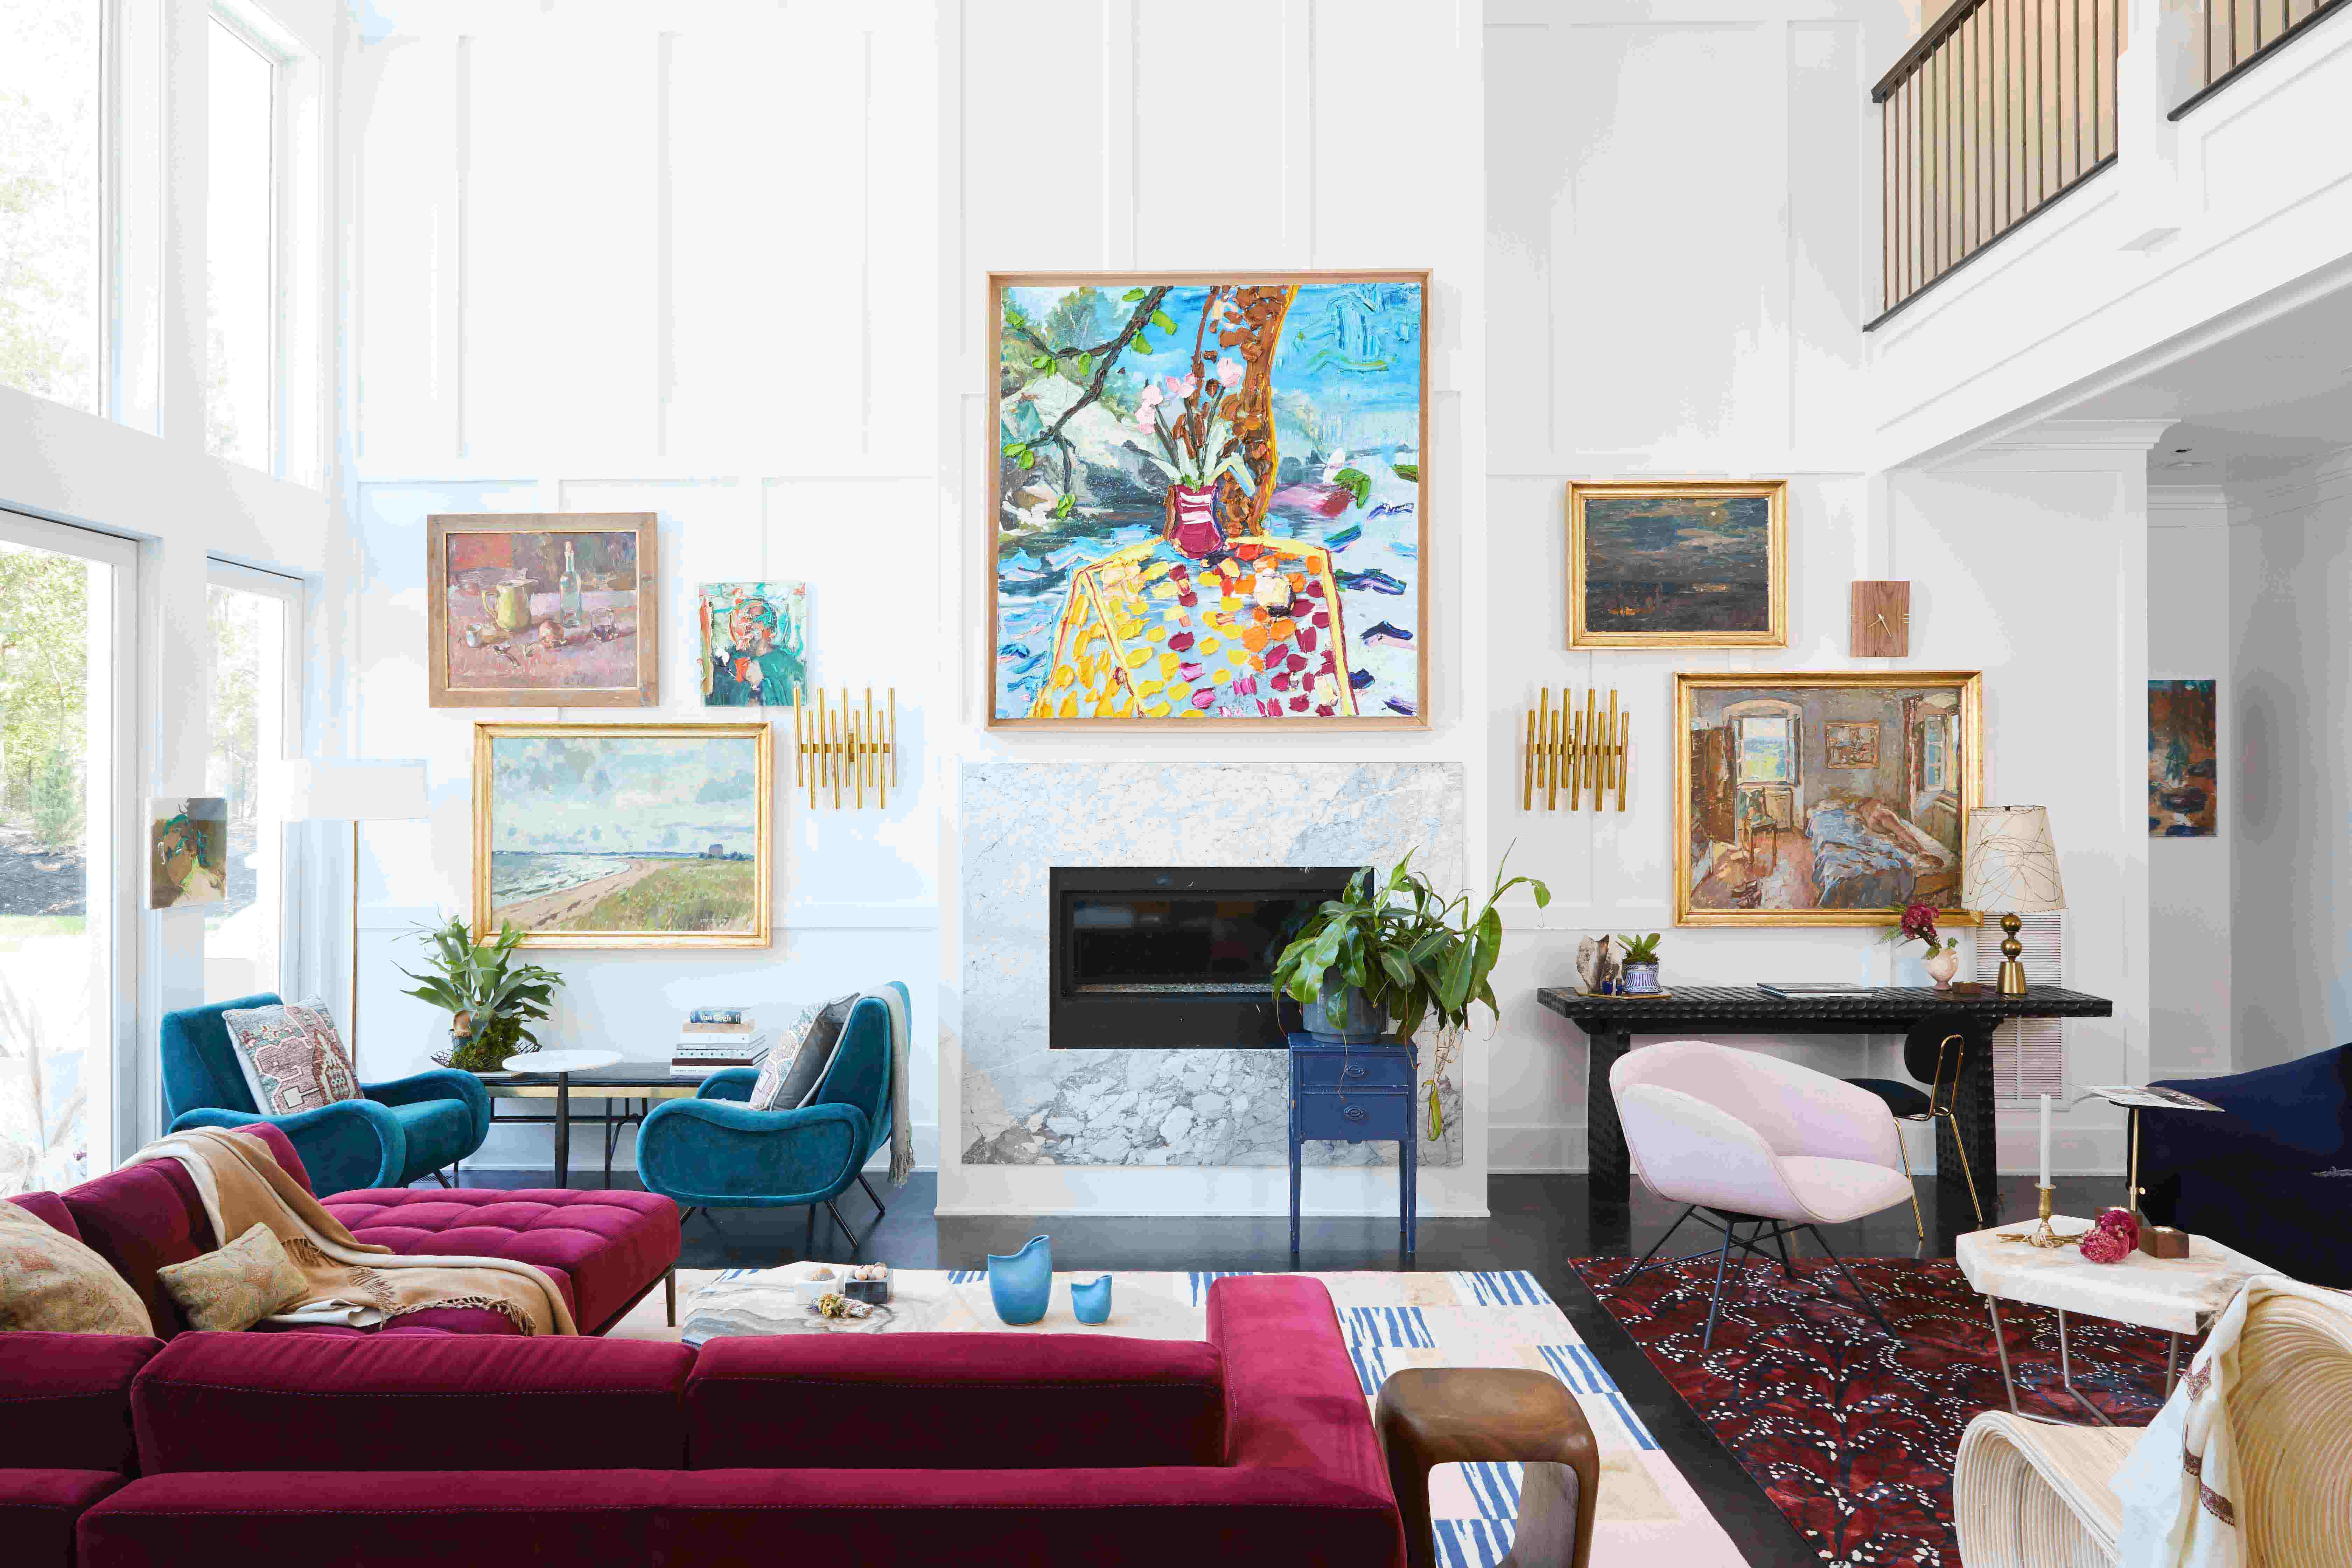 A neutral living room with pops of color throughout including velvet furniture and various pieces of art